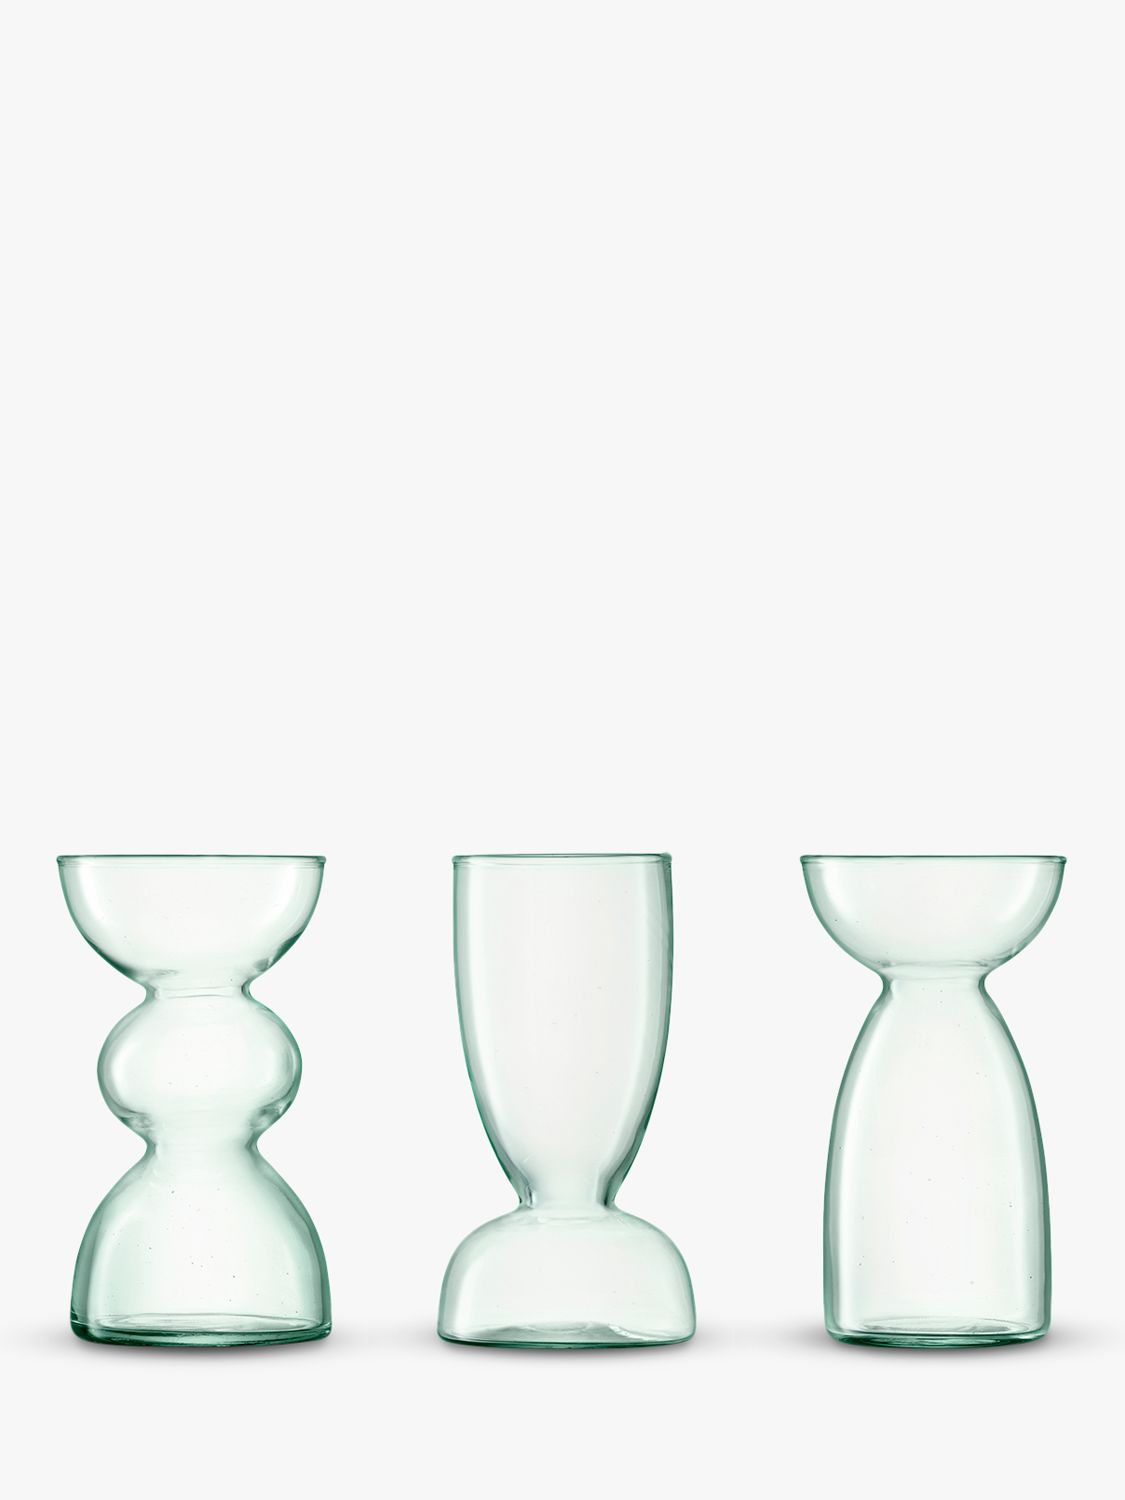 LSA International LSA International Canopy Trio of Recycled Glass Vases, Set of 3, Clear